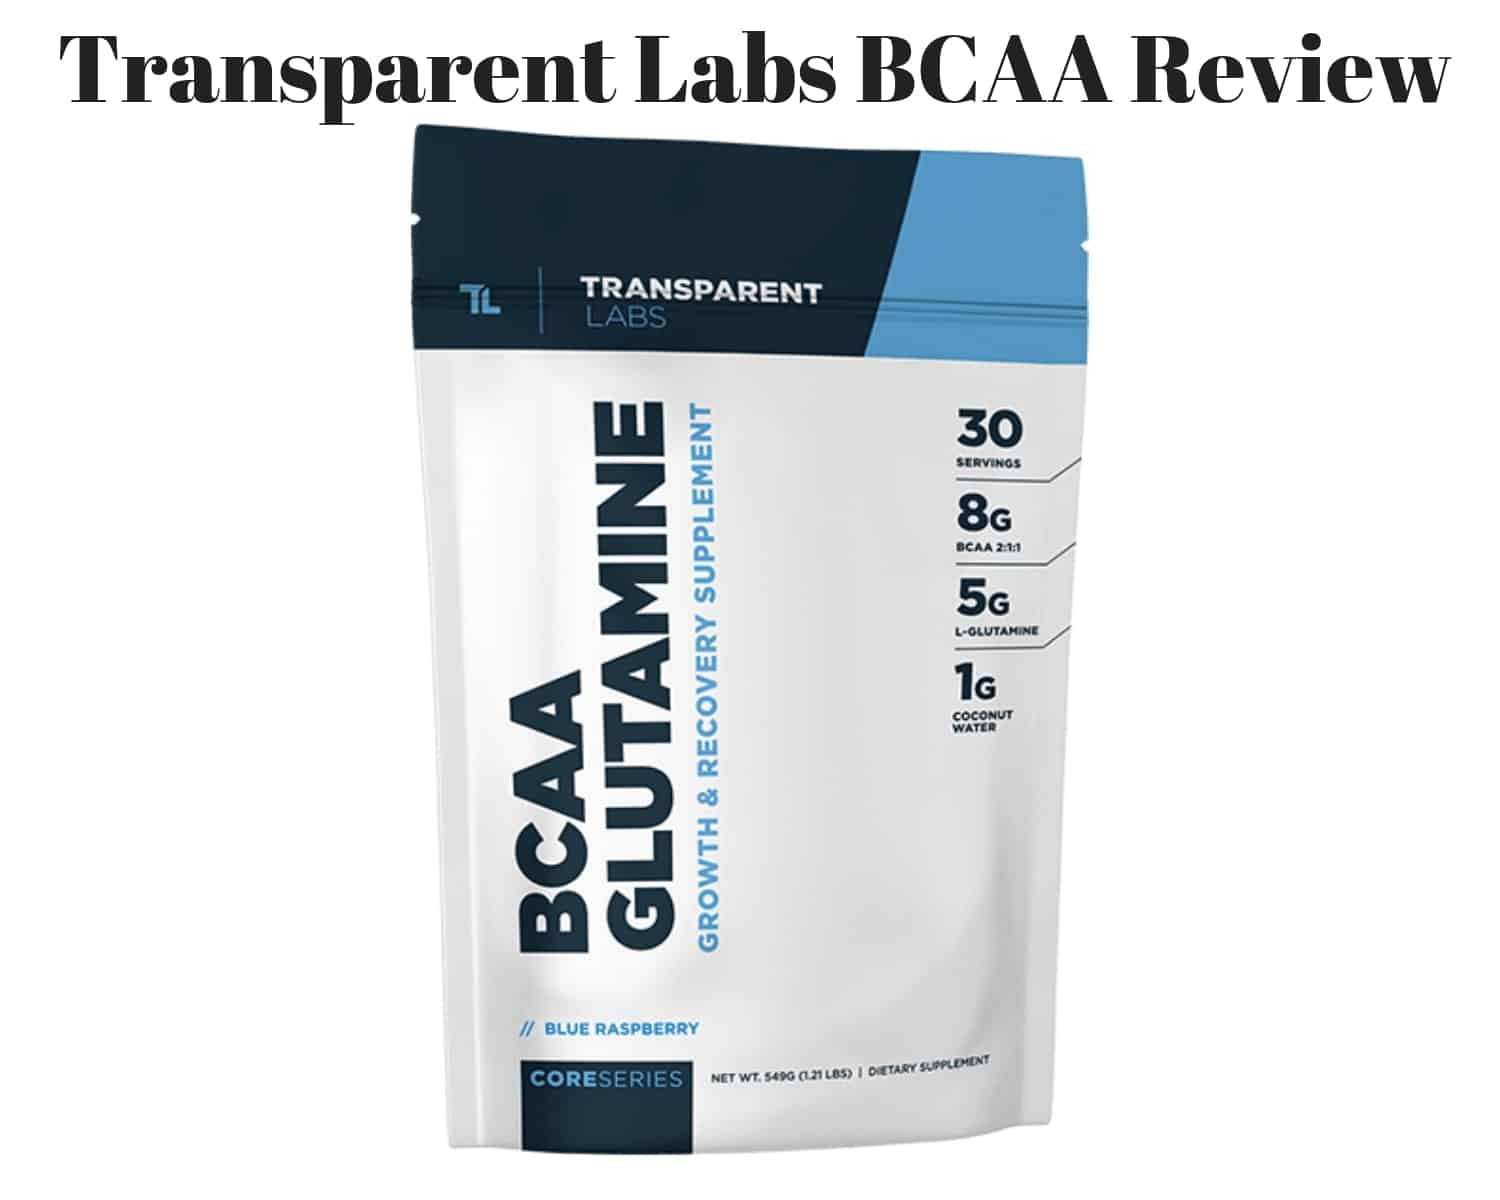 Transparent Labs BCAA Review – Ingredients, Price, Benefits & More